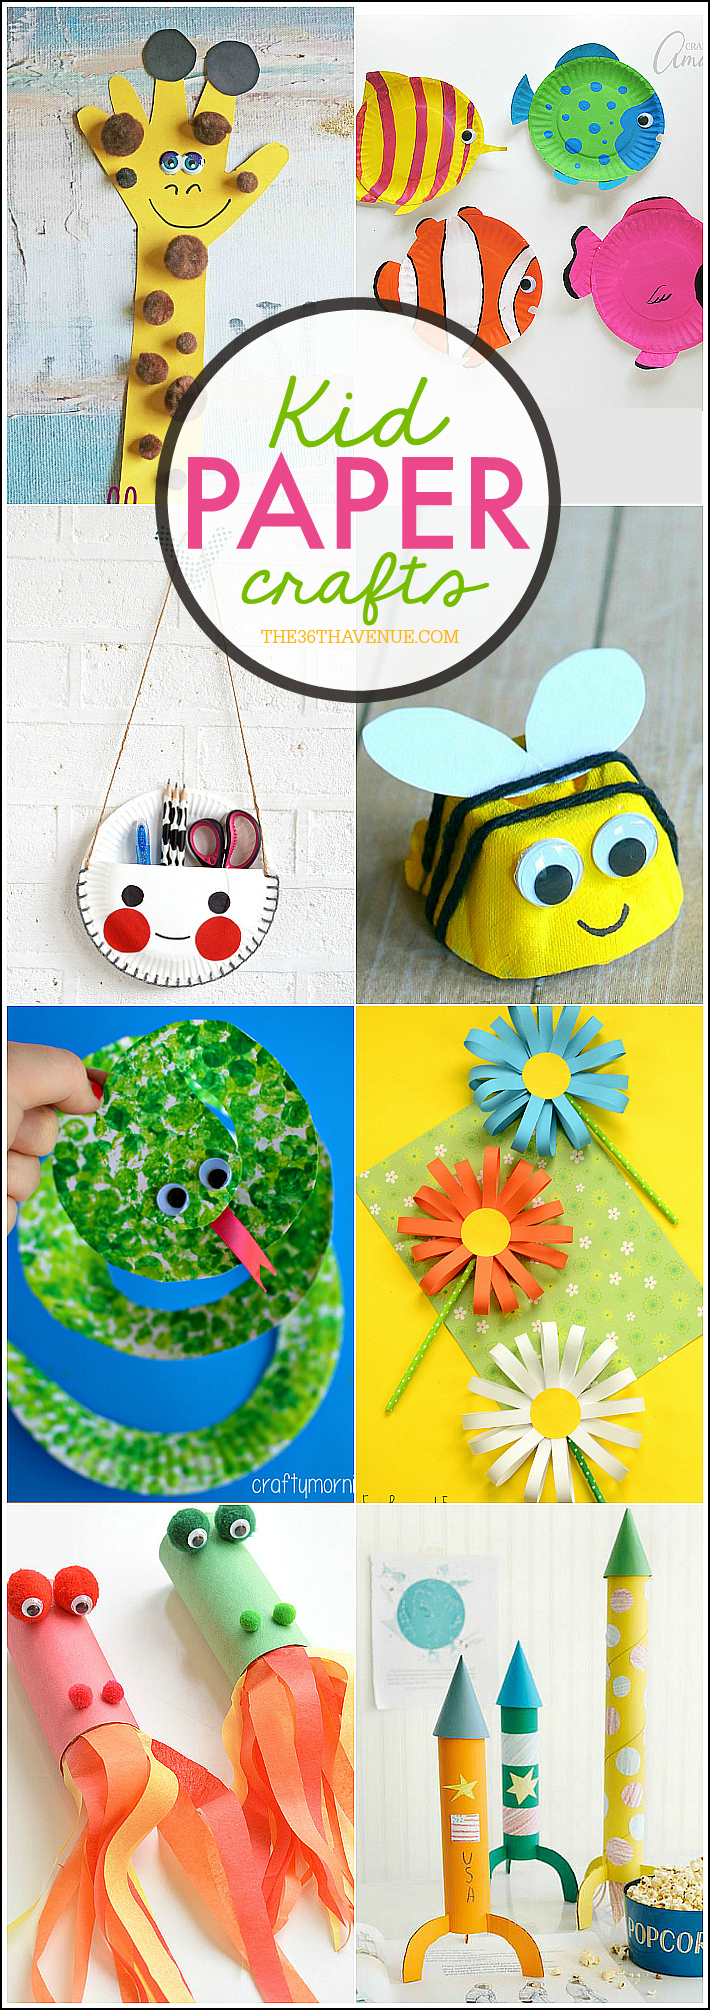 10 Unique Ideas For Crafts For Kids kid paper crafts the 36th avenue